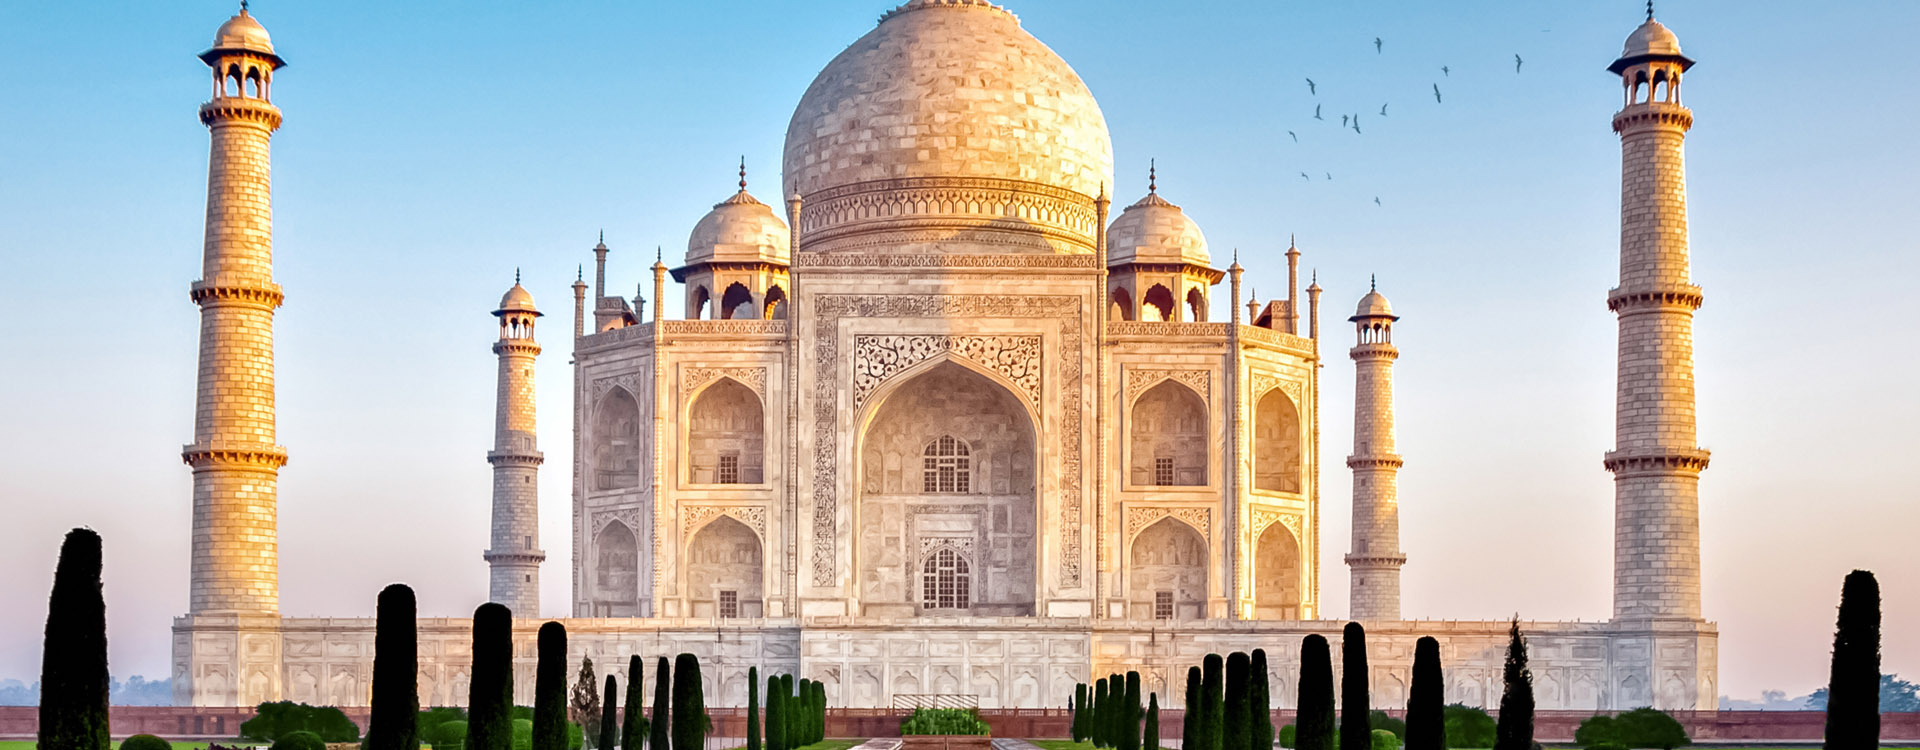 the taj mahal in the indian region uttar pradesh